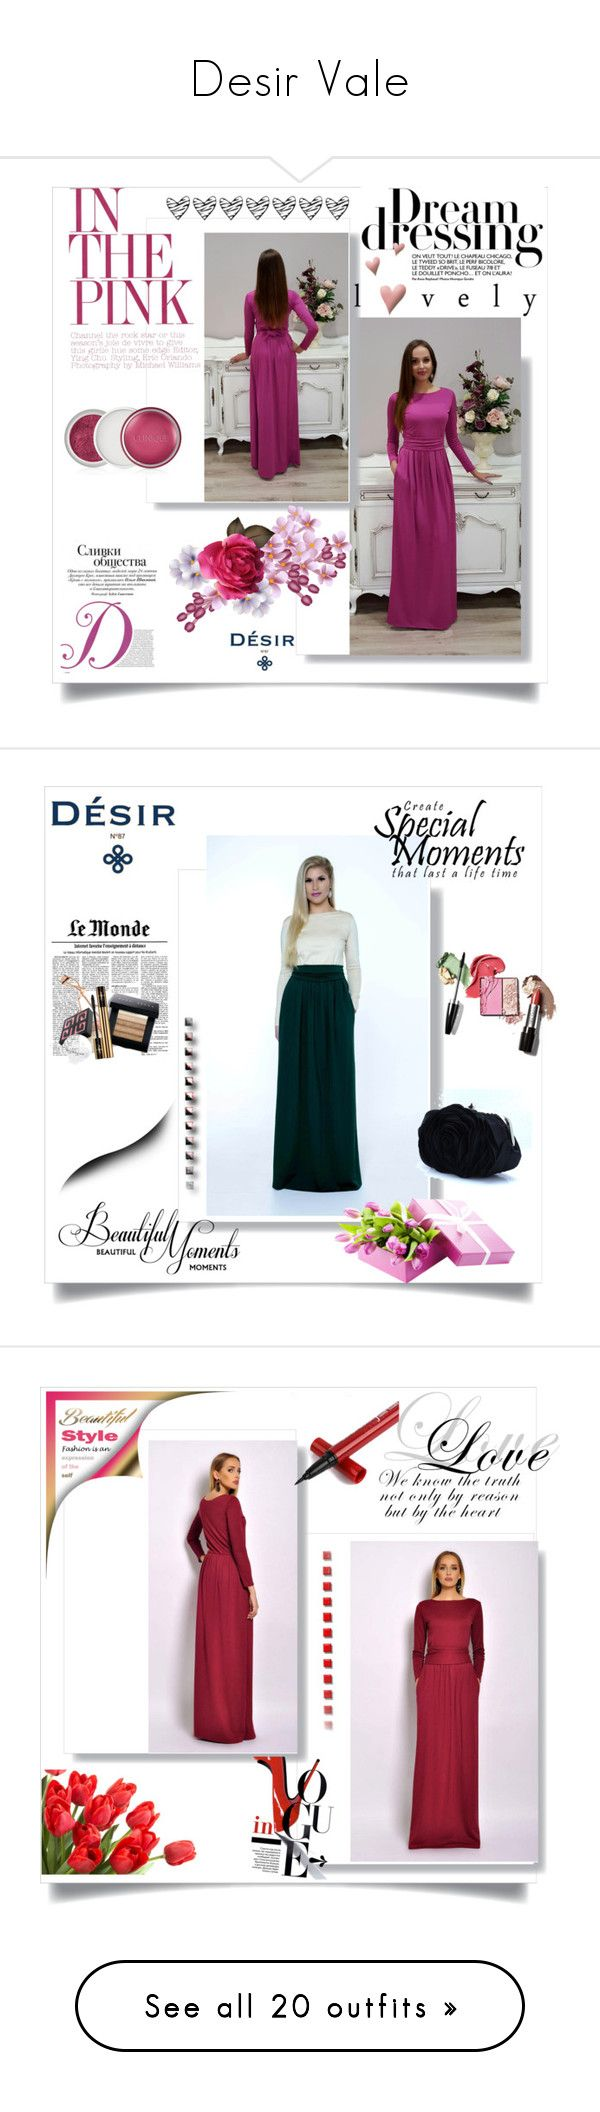 """""""Desir Vale"""" by elma-993 ❤ liked on Polyvore featuring Clinique, DesirVale, plus size dresses, WALL, Vintage, Jimmy Choo, Office, Dolce&Gabbana, Sole Society and Bobbi Brown Cosmetics"""